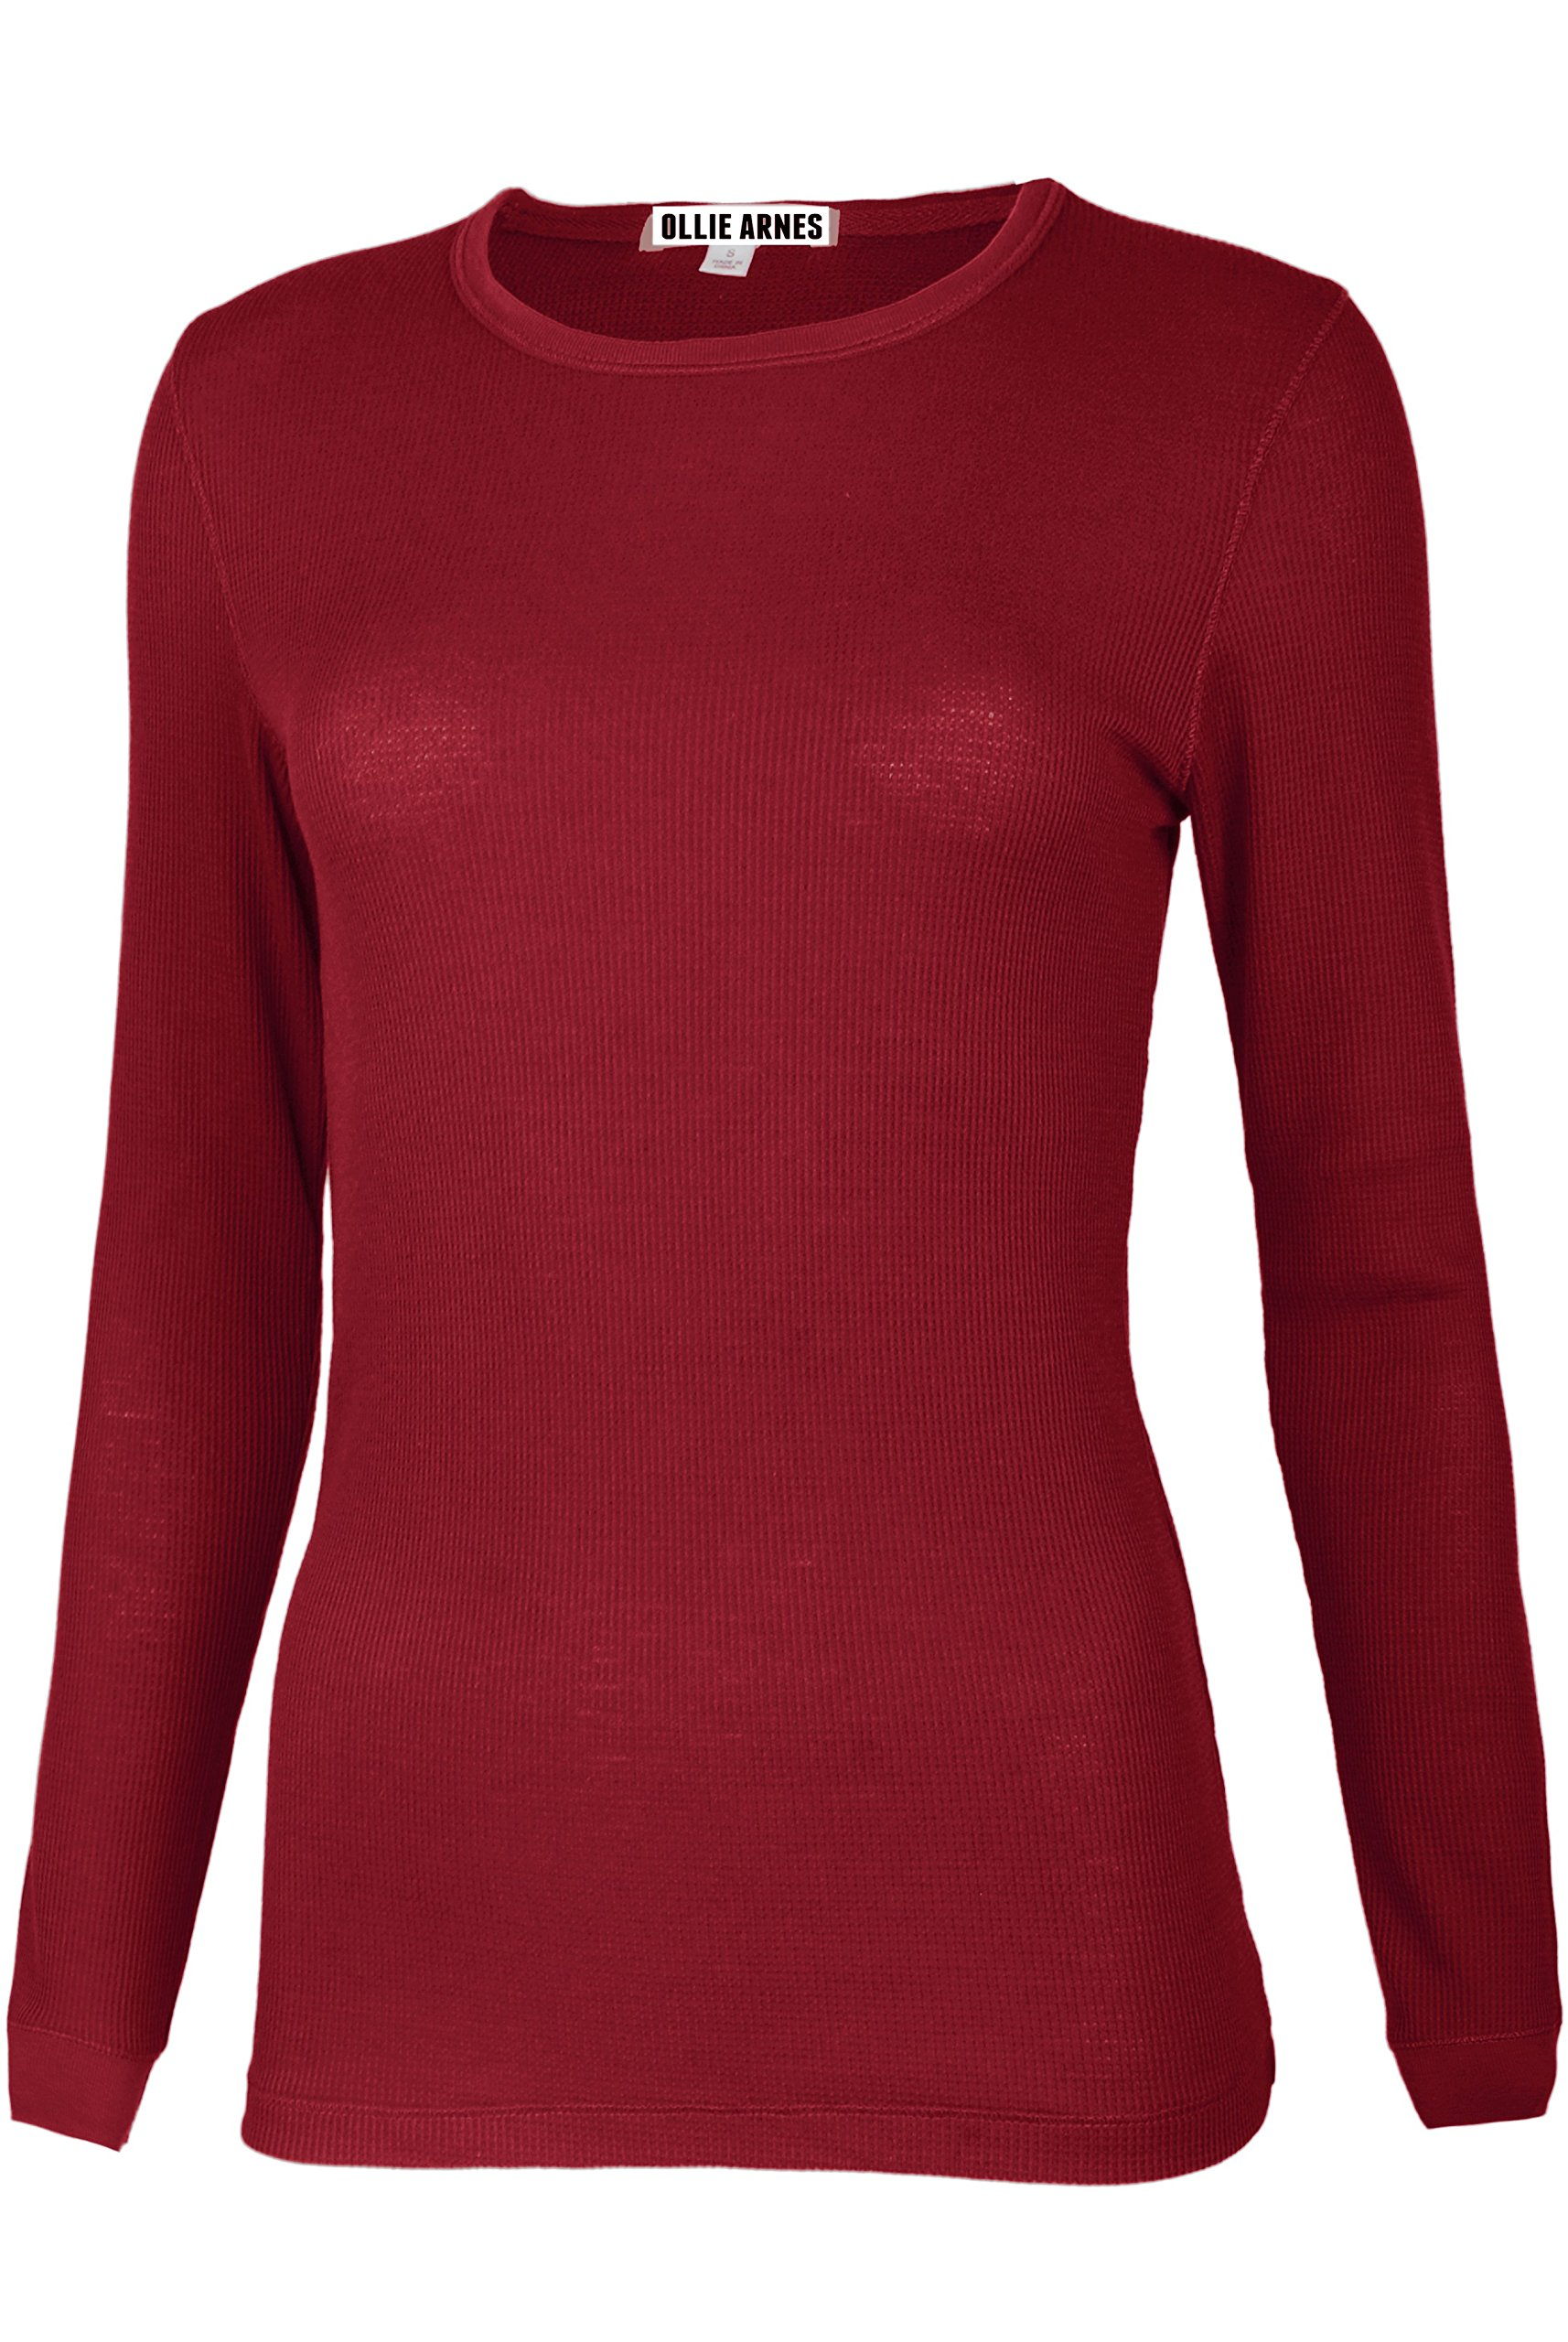 Ollie Arnes Women's Round Neck Fitted Long Sleeve Cool Sweater Shirt Top 99_BURGUNDY 1X